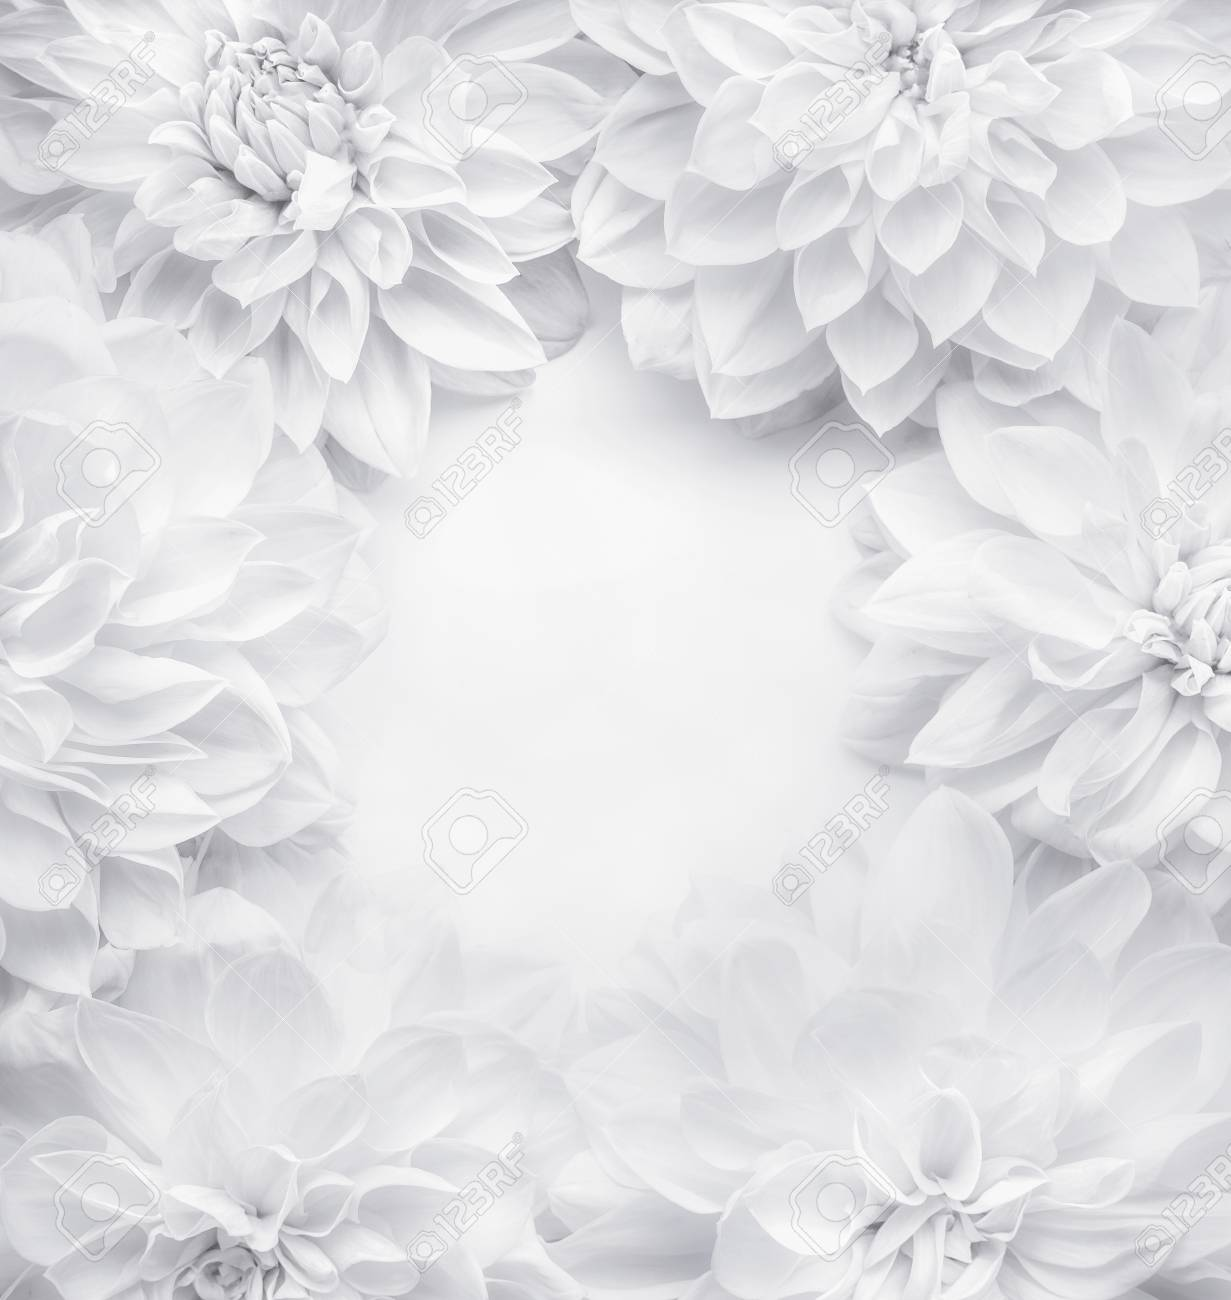 Creative White Flowers Frame Background Floral Pattern Or Layout